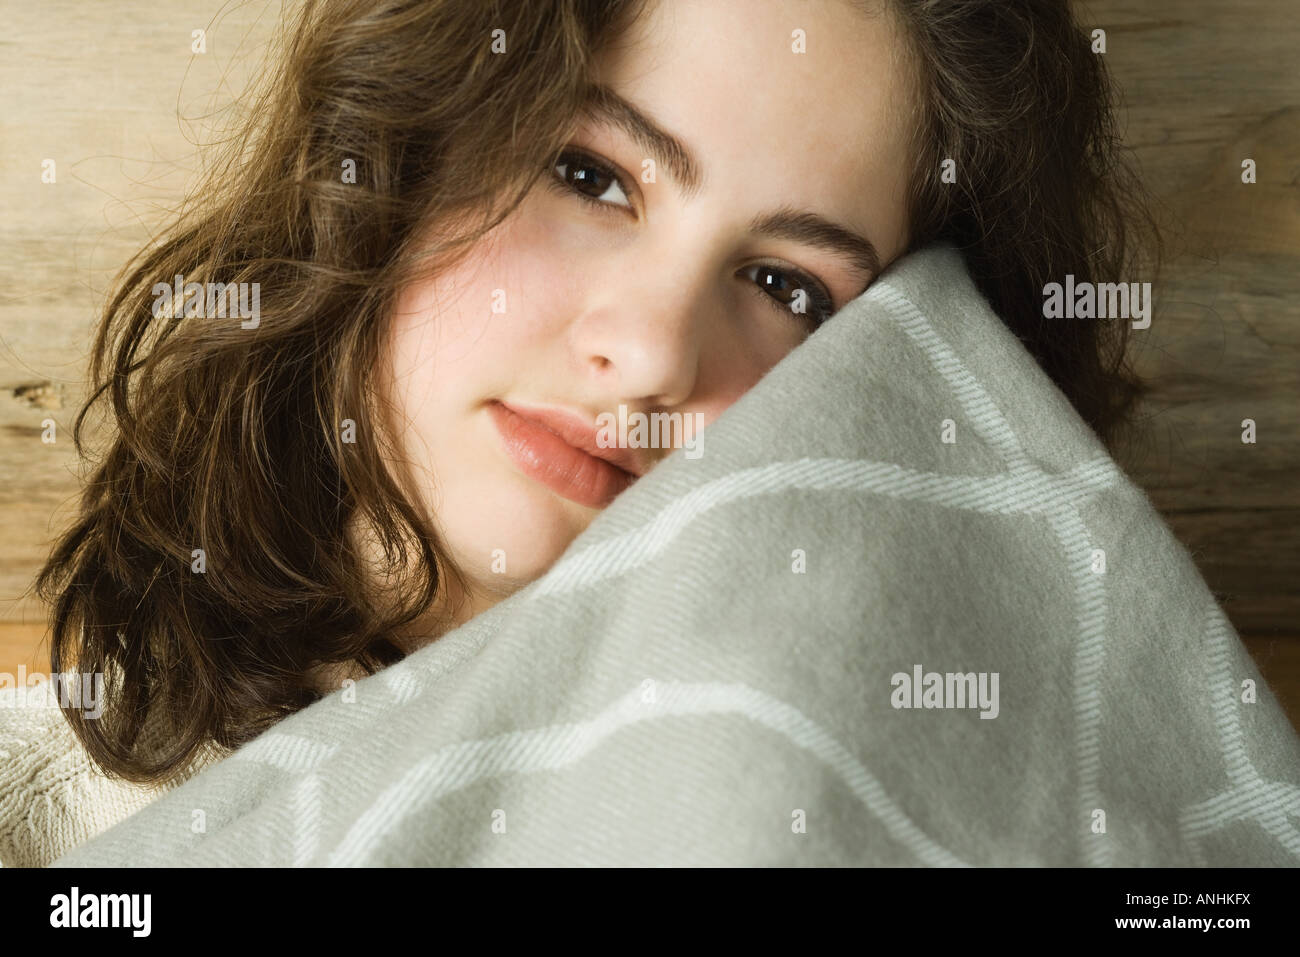 Teen girl holding blanket up to face, looking at camera, portrait